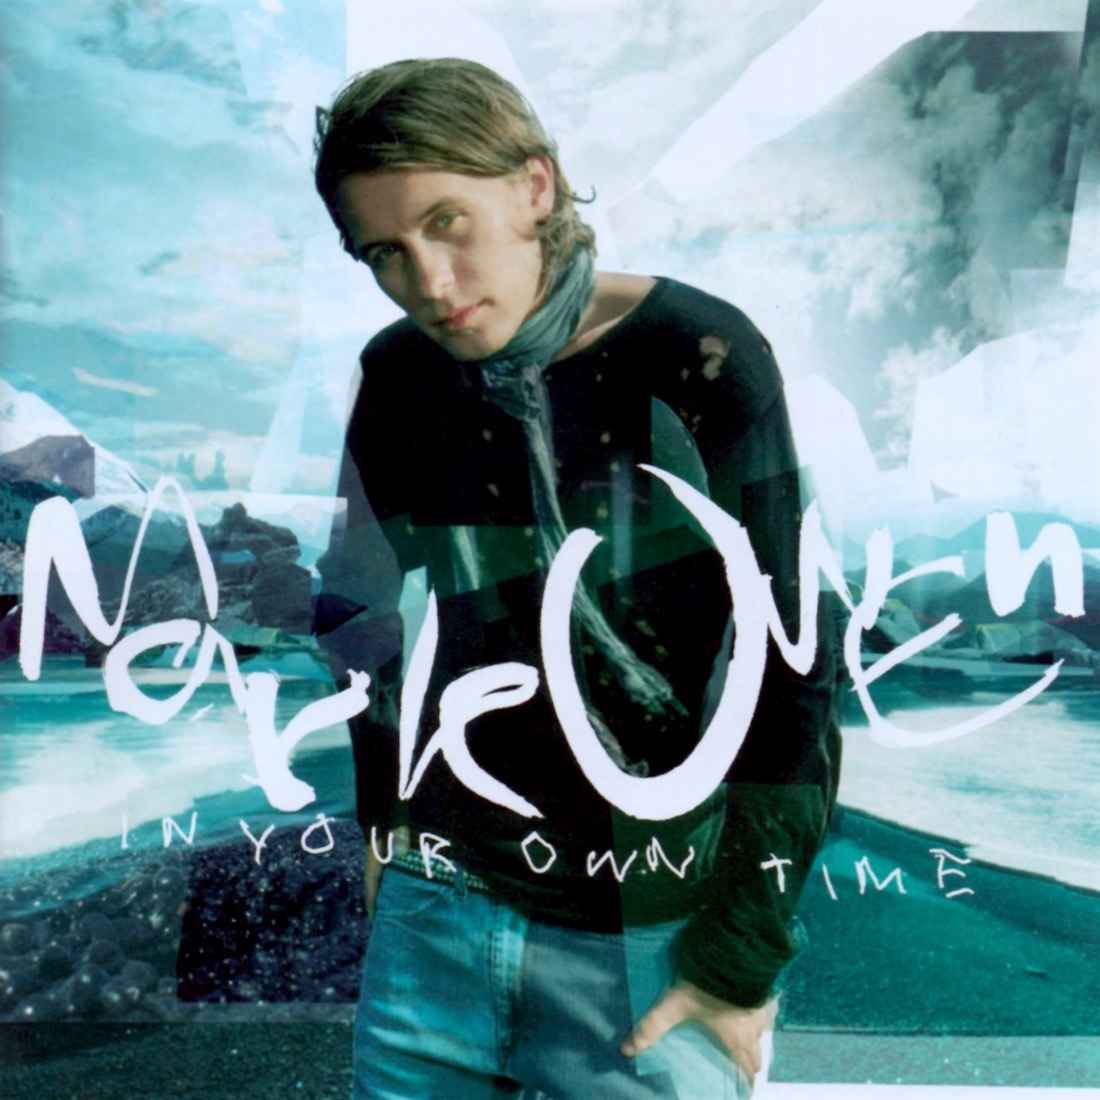 Mark Owen - In Your Own Time (2003) album cover